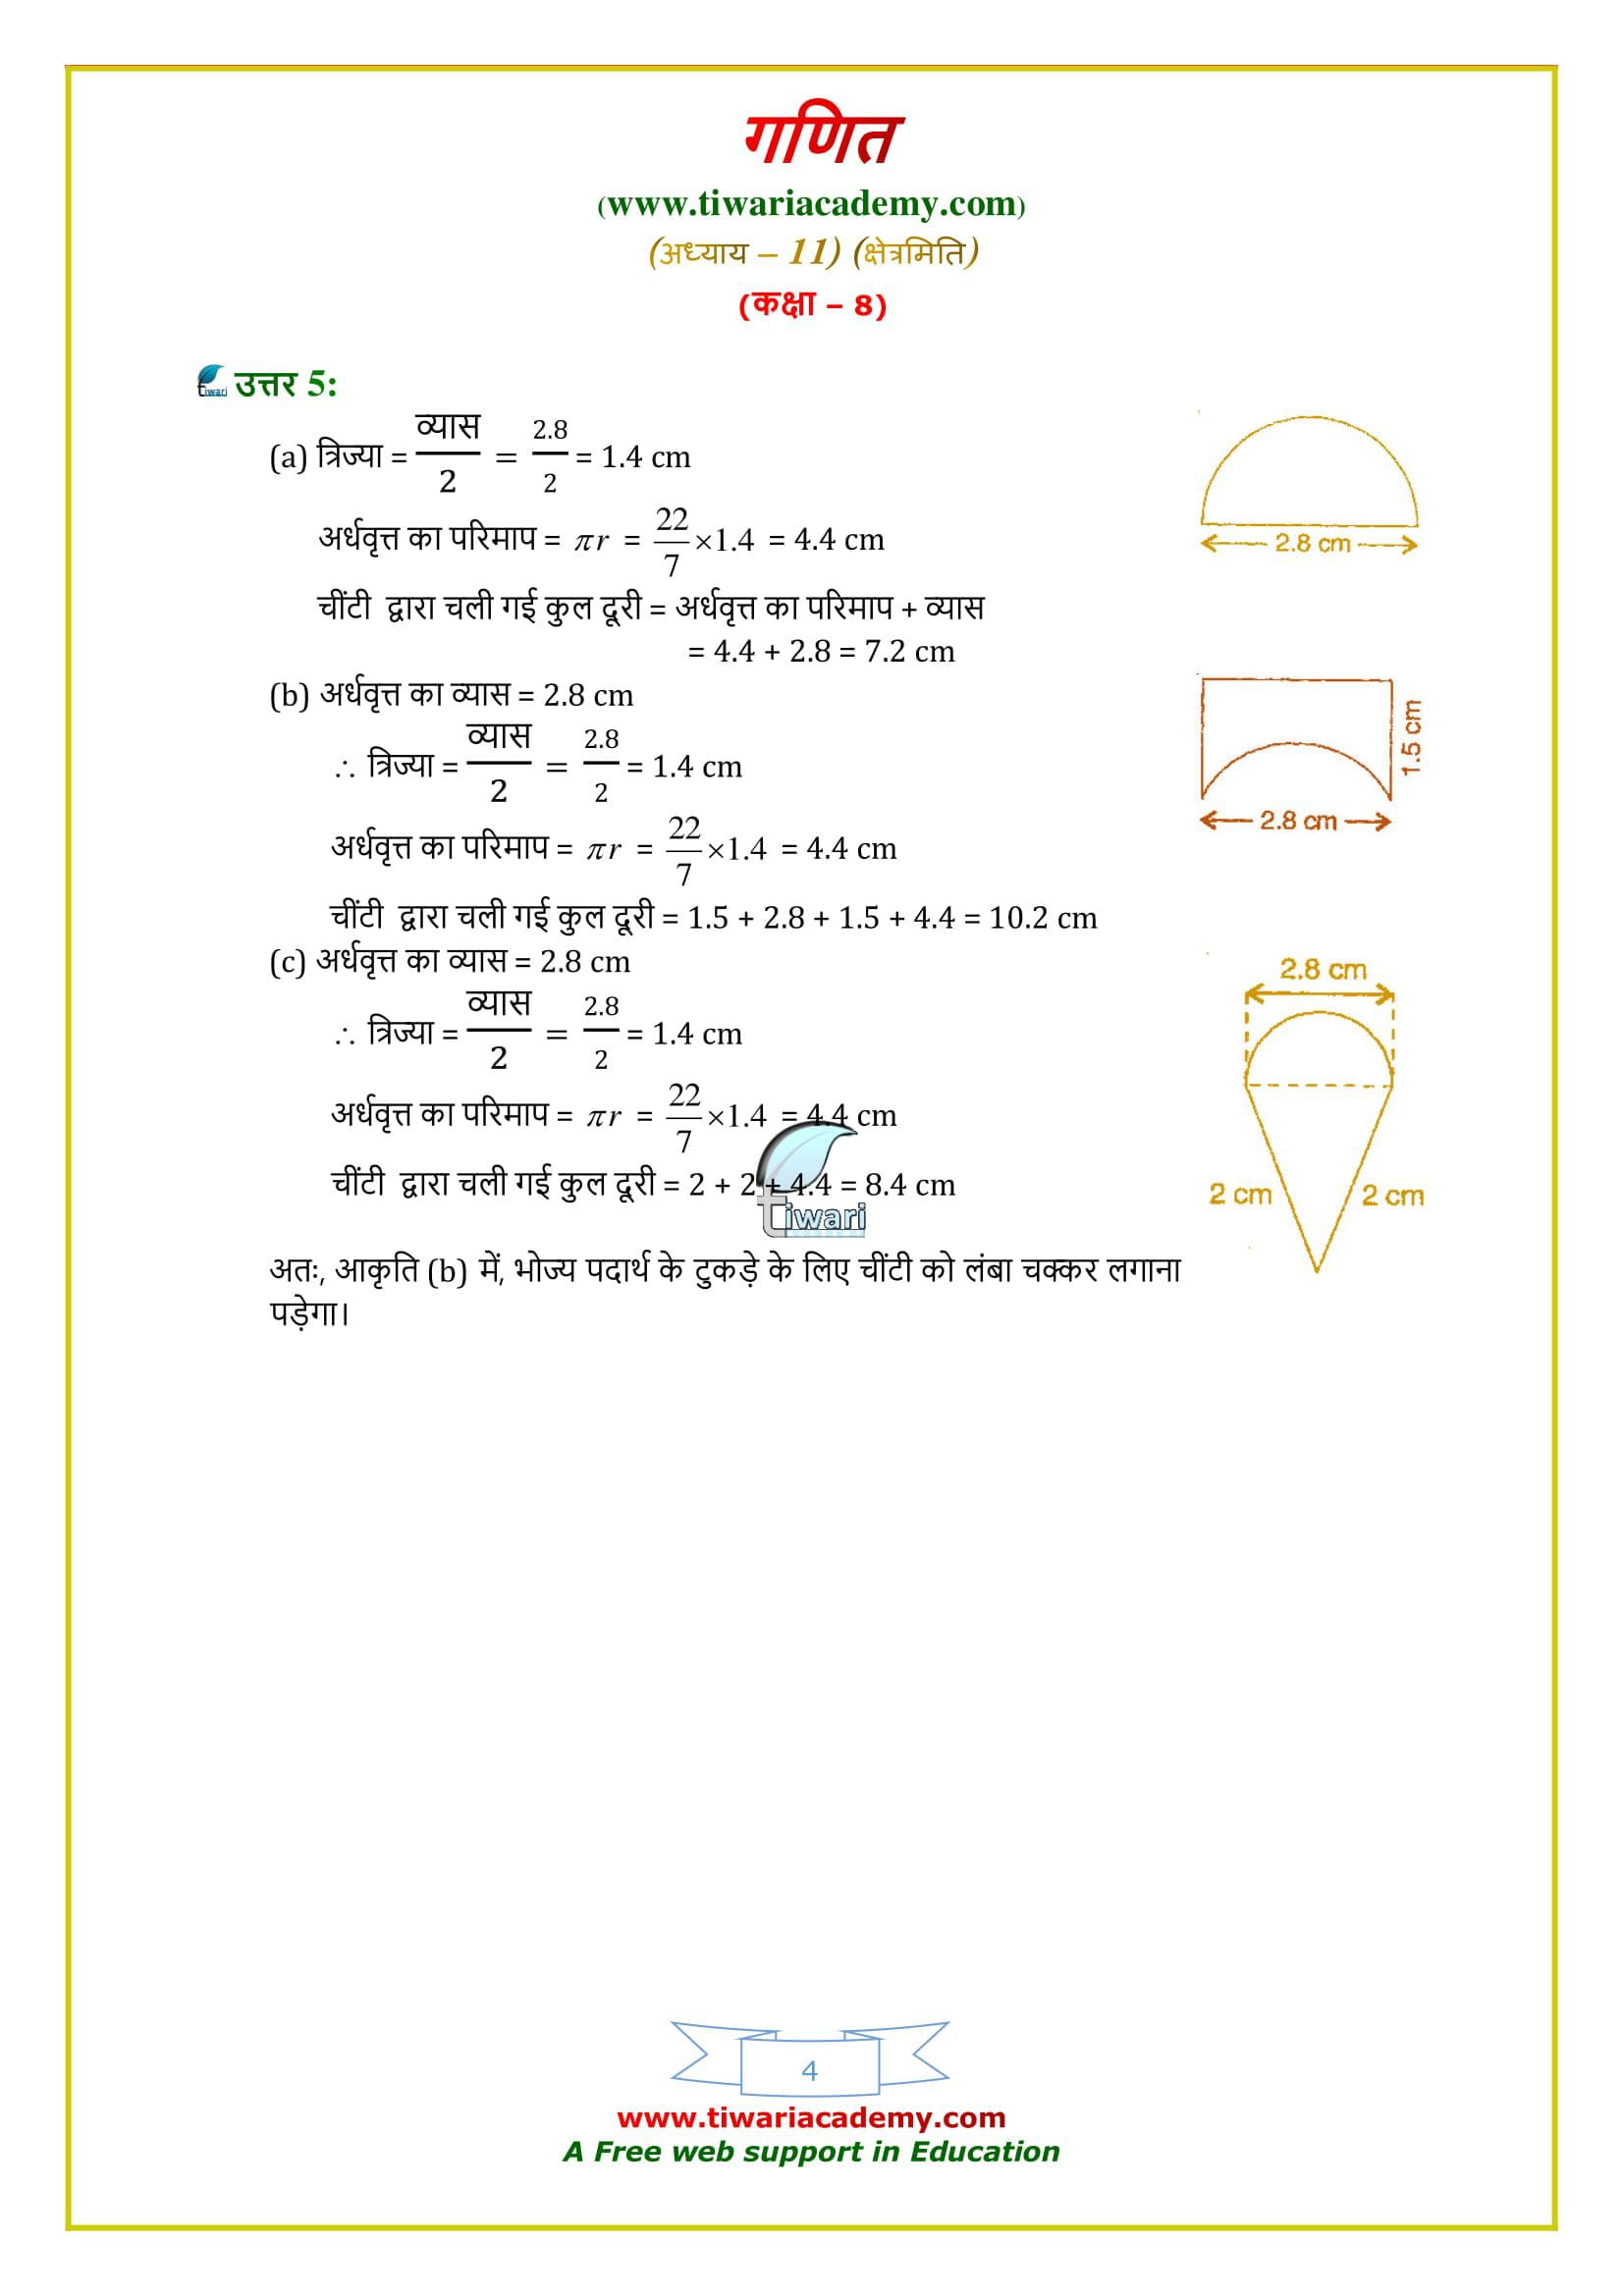 8 Maths Exercise 11.1 solutions updated for 2018-19 mp and cbse board